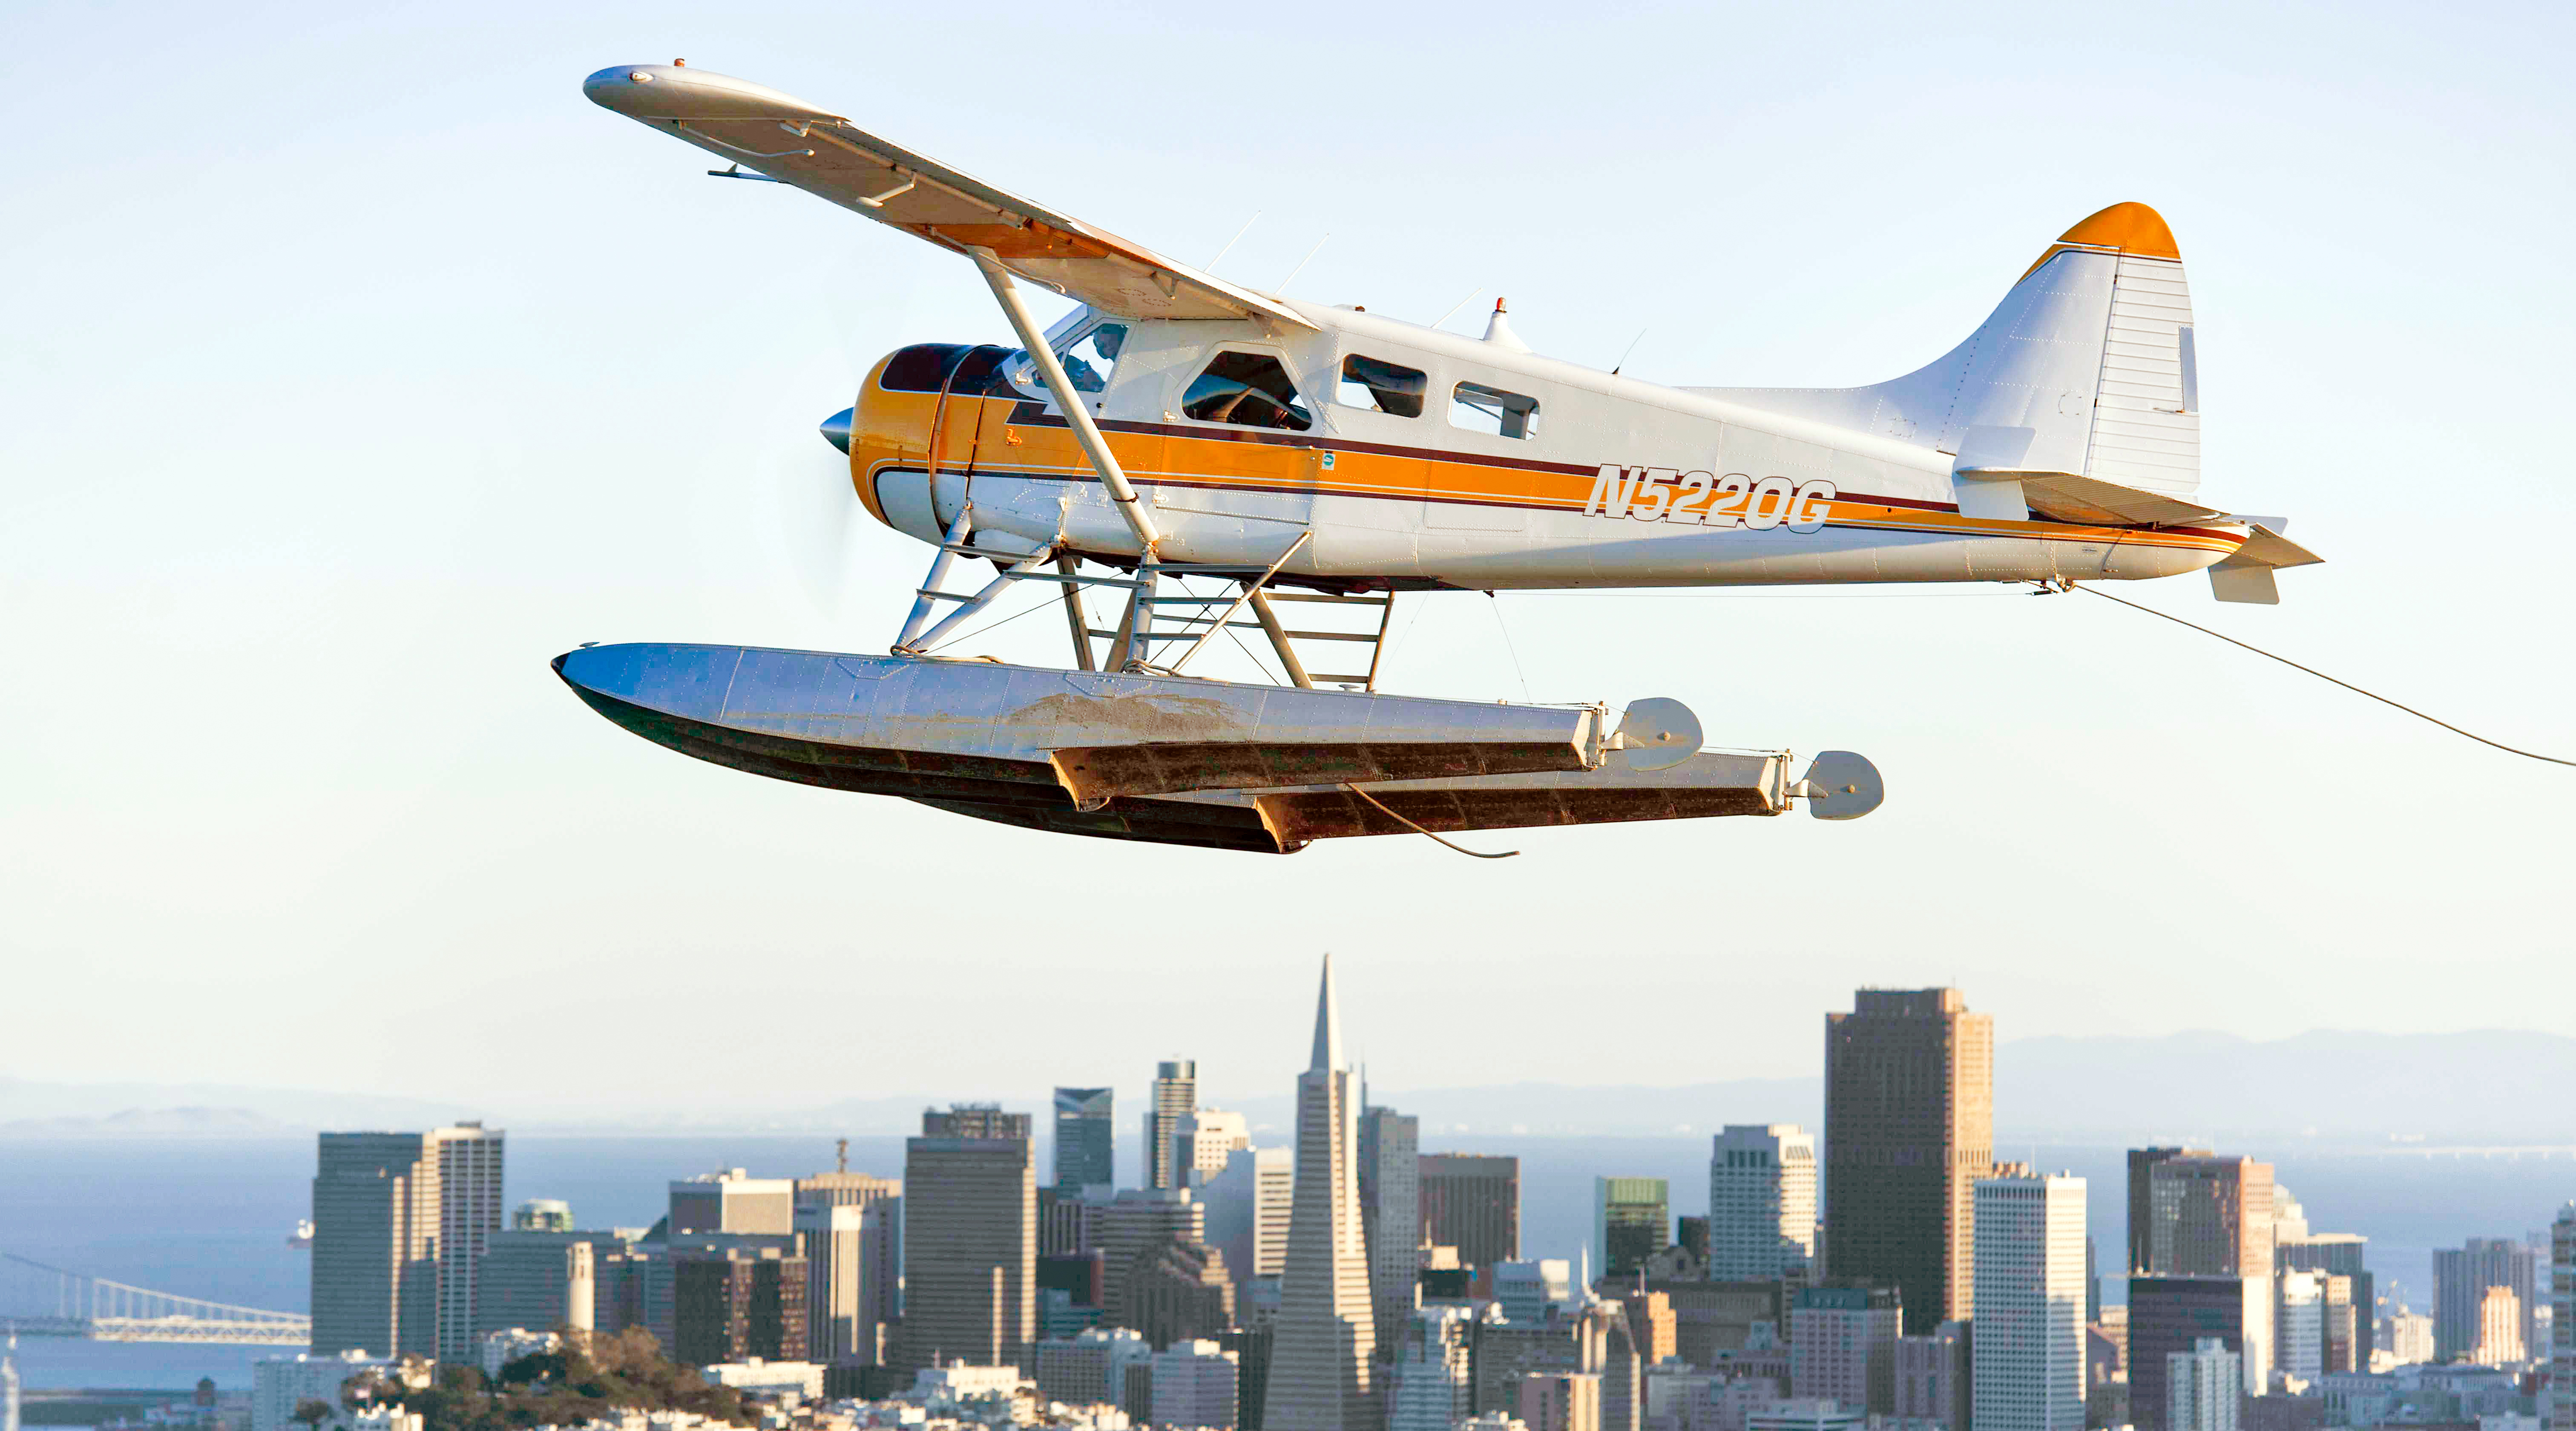 Tickets for Golden Gate by Seaplane